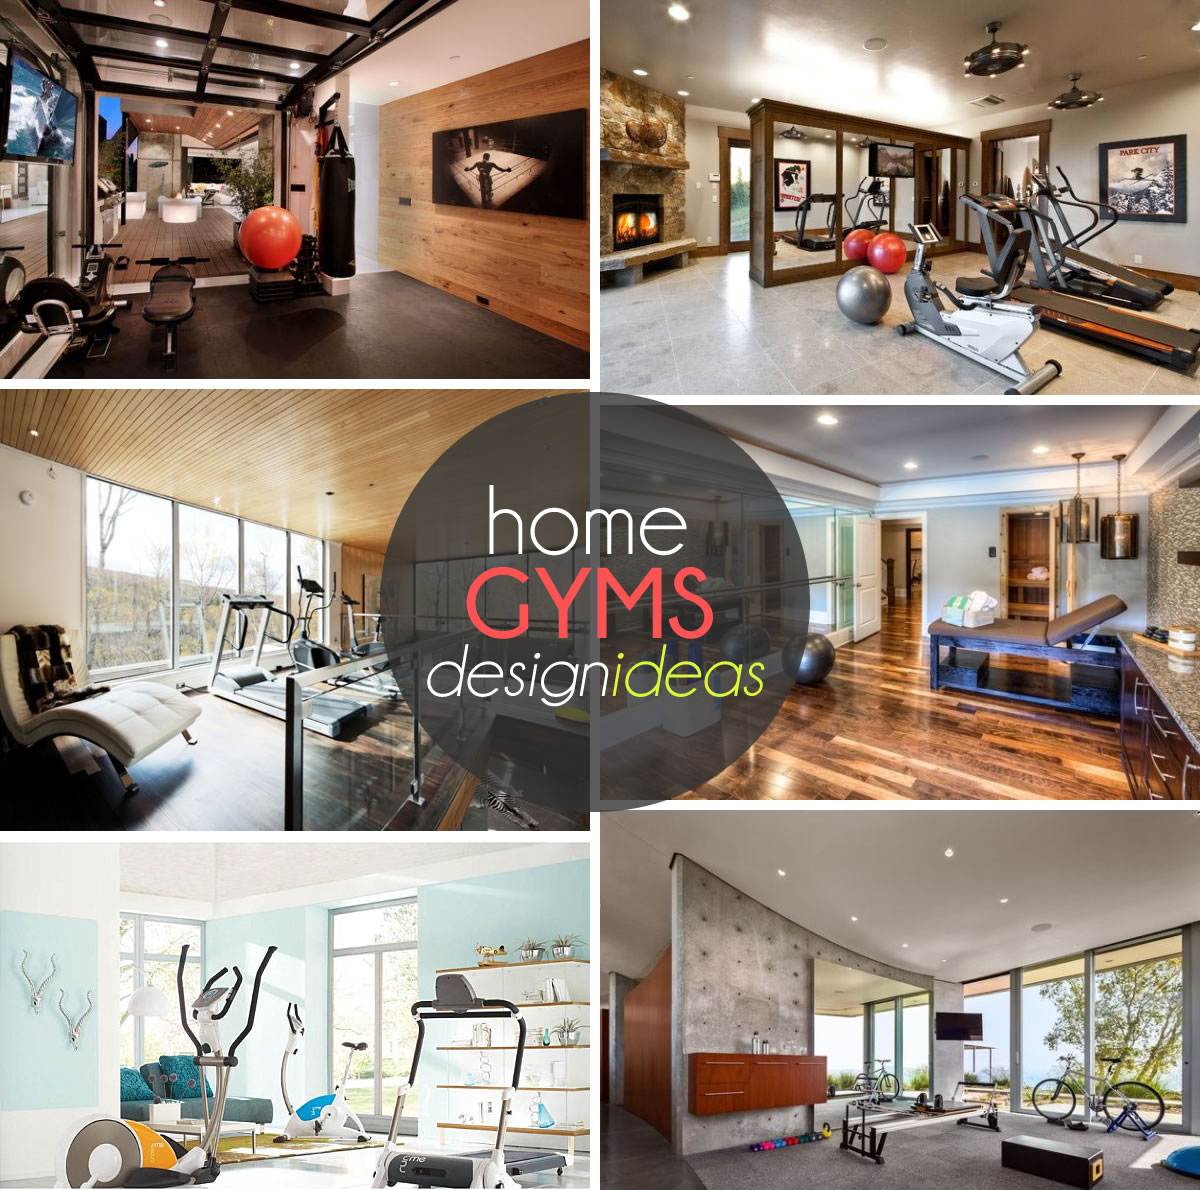 exquisite home gym design ideas 70 Home Gym Design Ideas